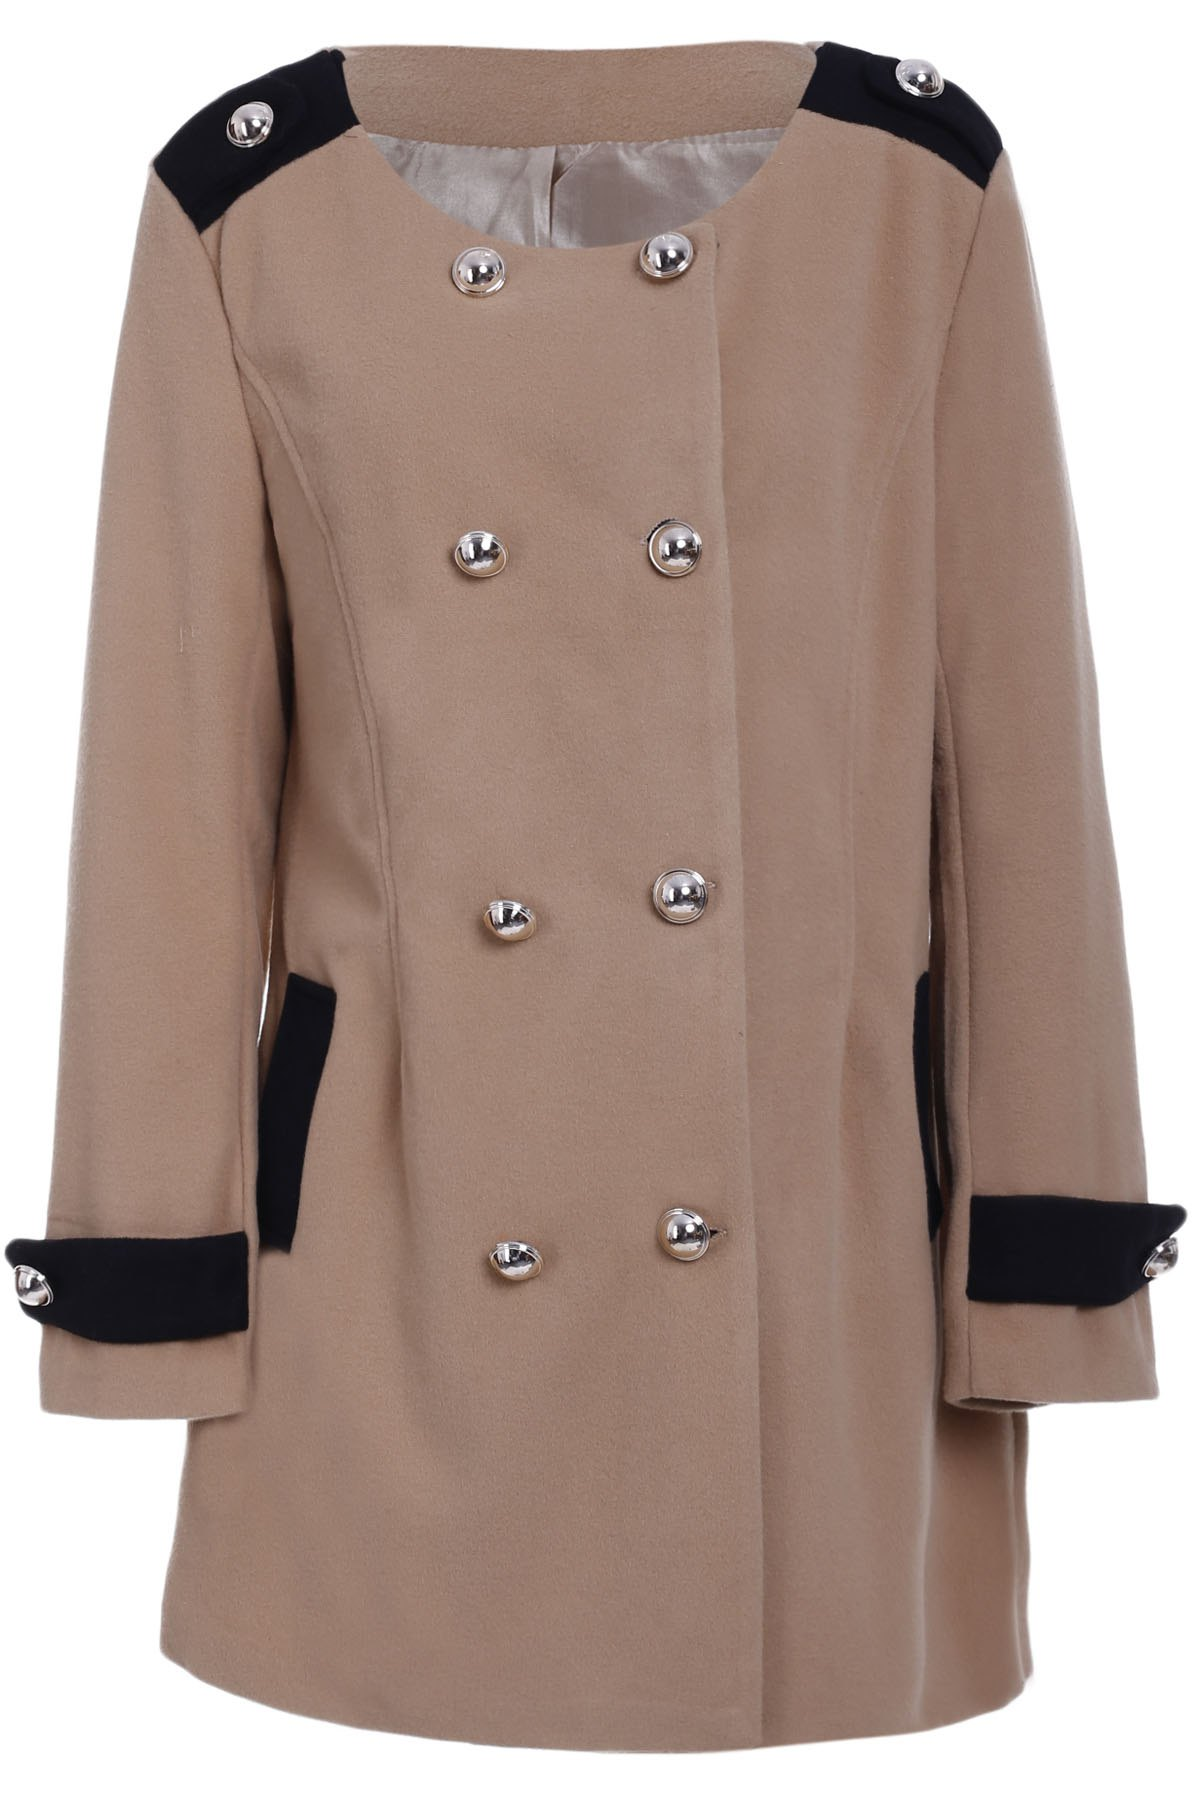 Shops Chic Turn-Down Collar Long Sleeve Double-Breasted Woolen Coat For Women